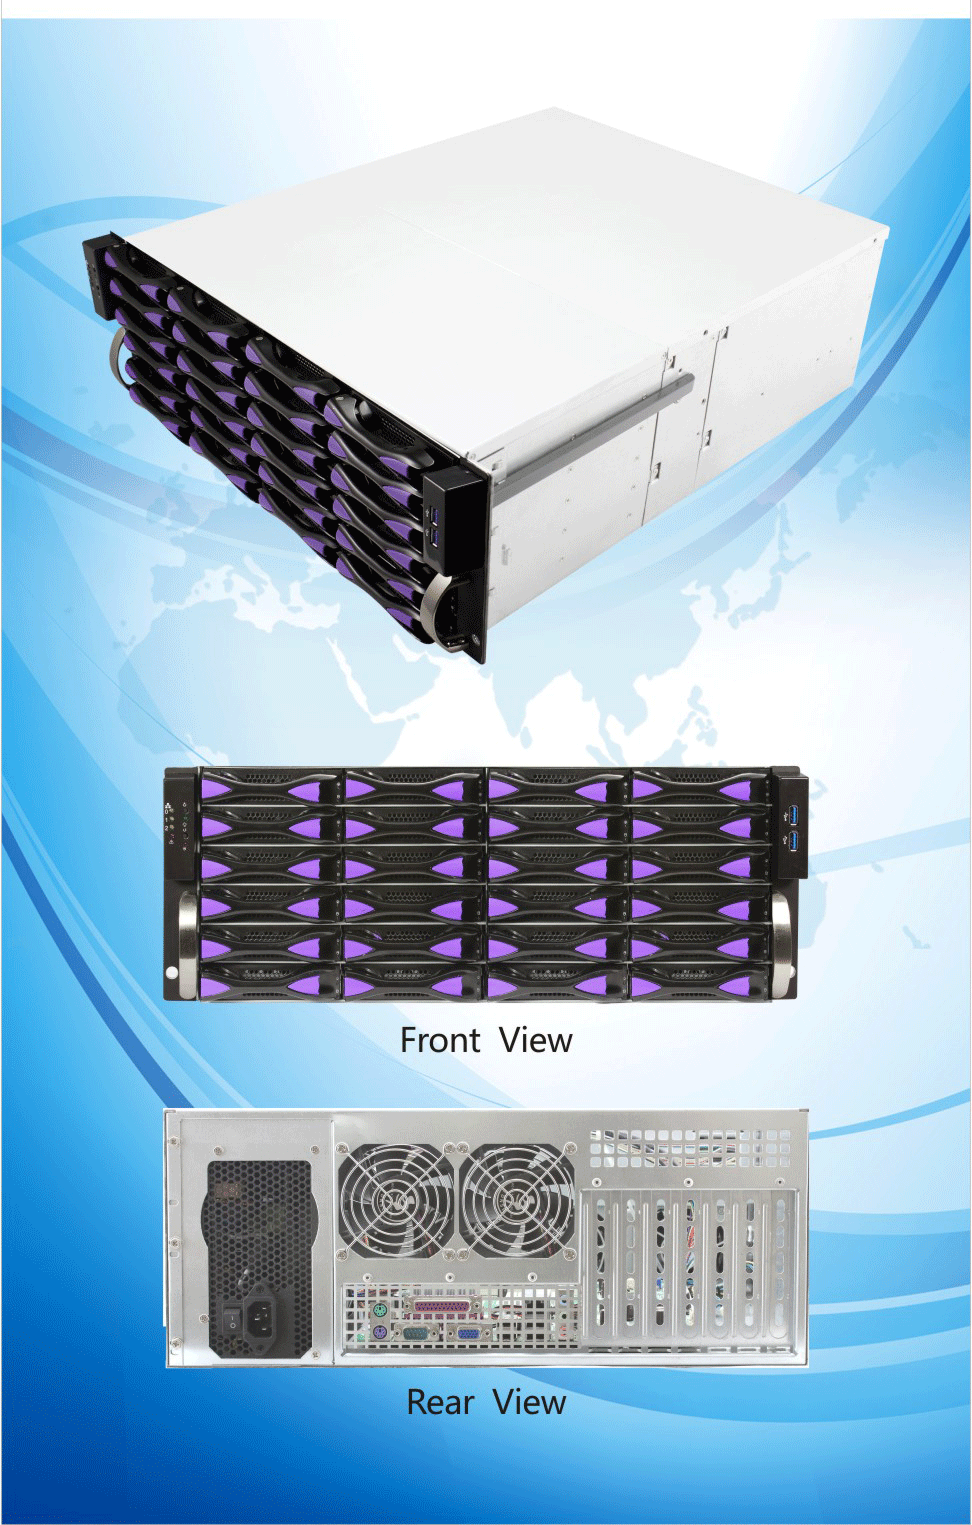 ED424H55 19 inch 4U JBOD storage case Hot swap 12Gb server rack case 24 bays CCTV NVR sever chassis